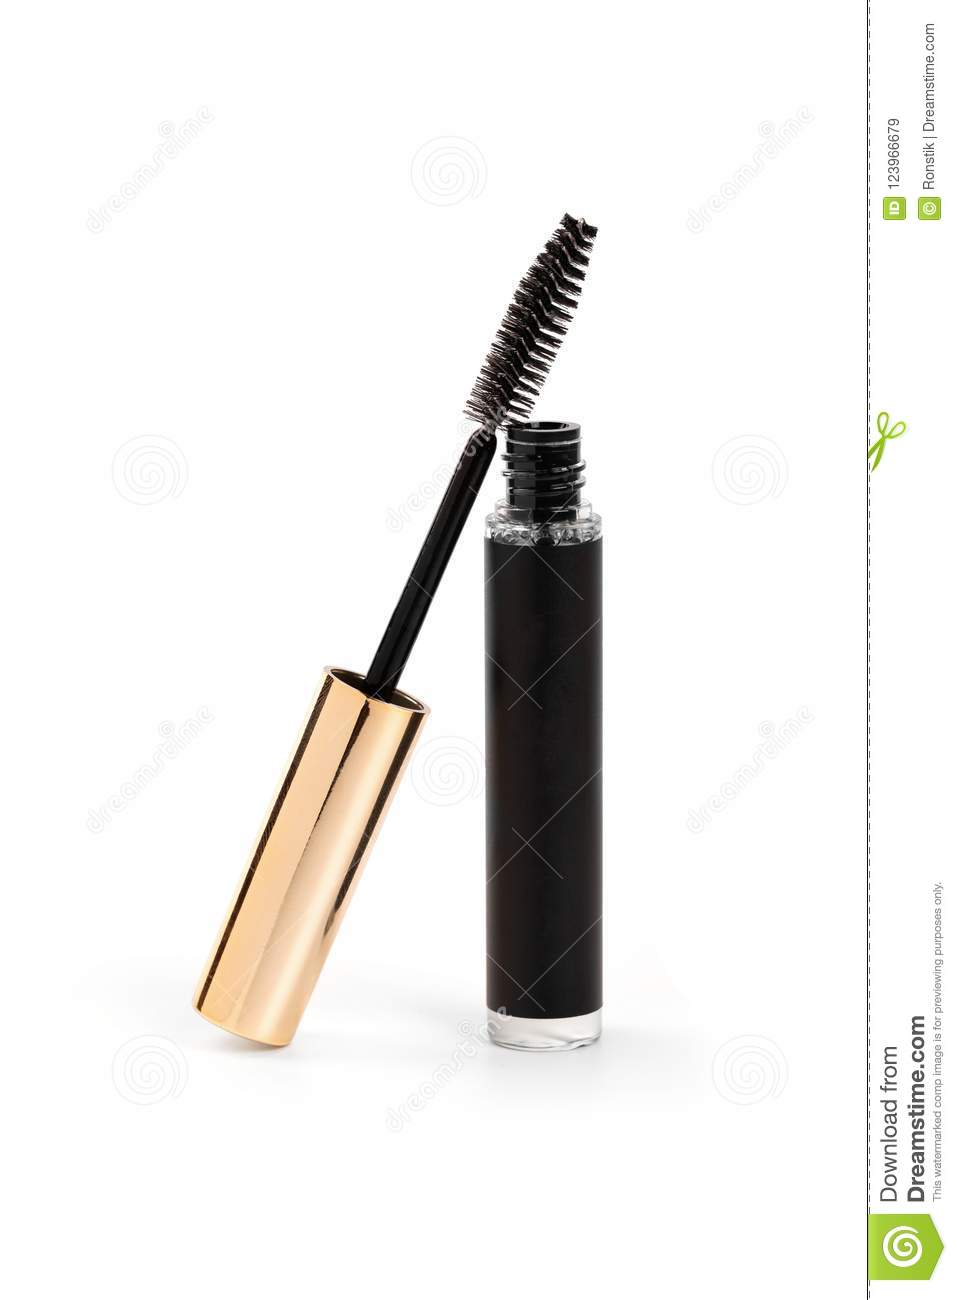 acec8eda79f Mascara tube and wand isolated on white background. More similar stock  images